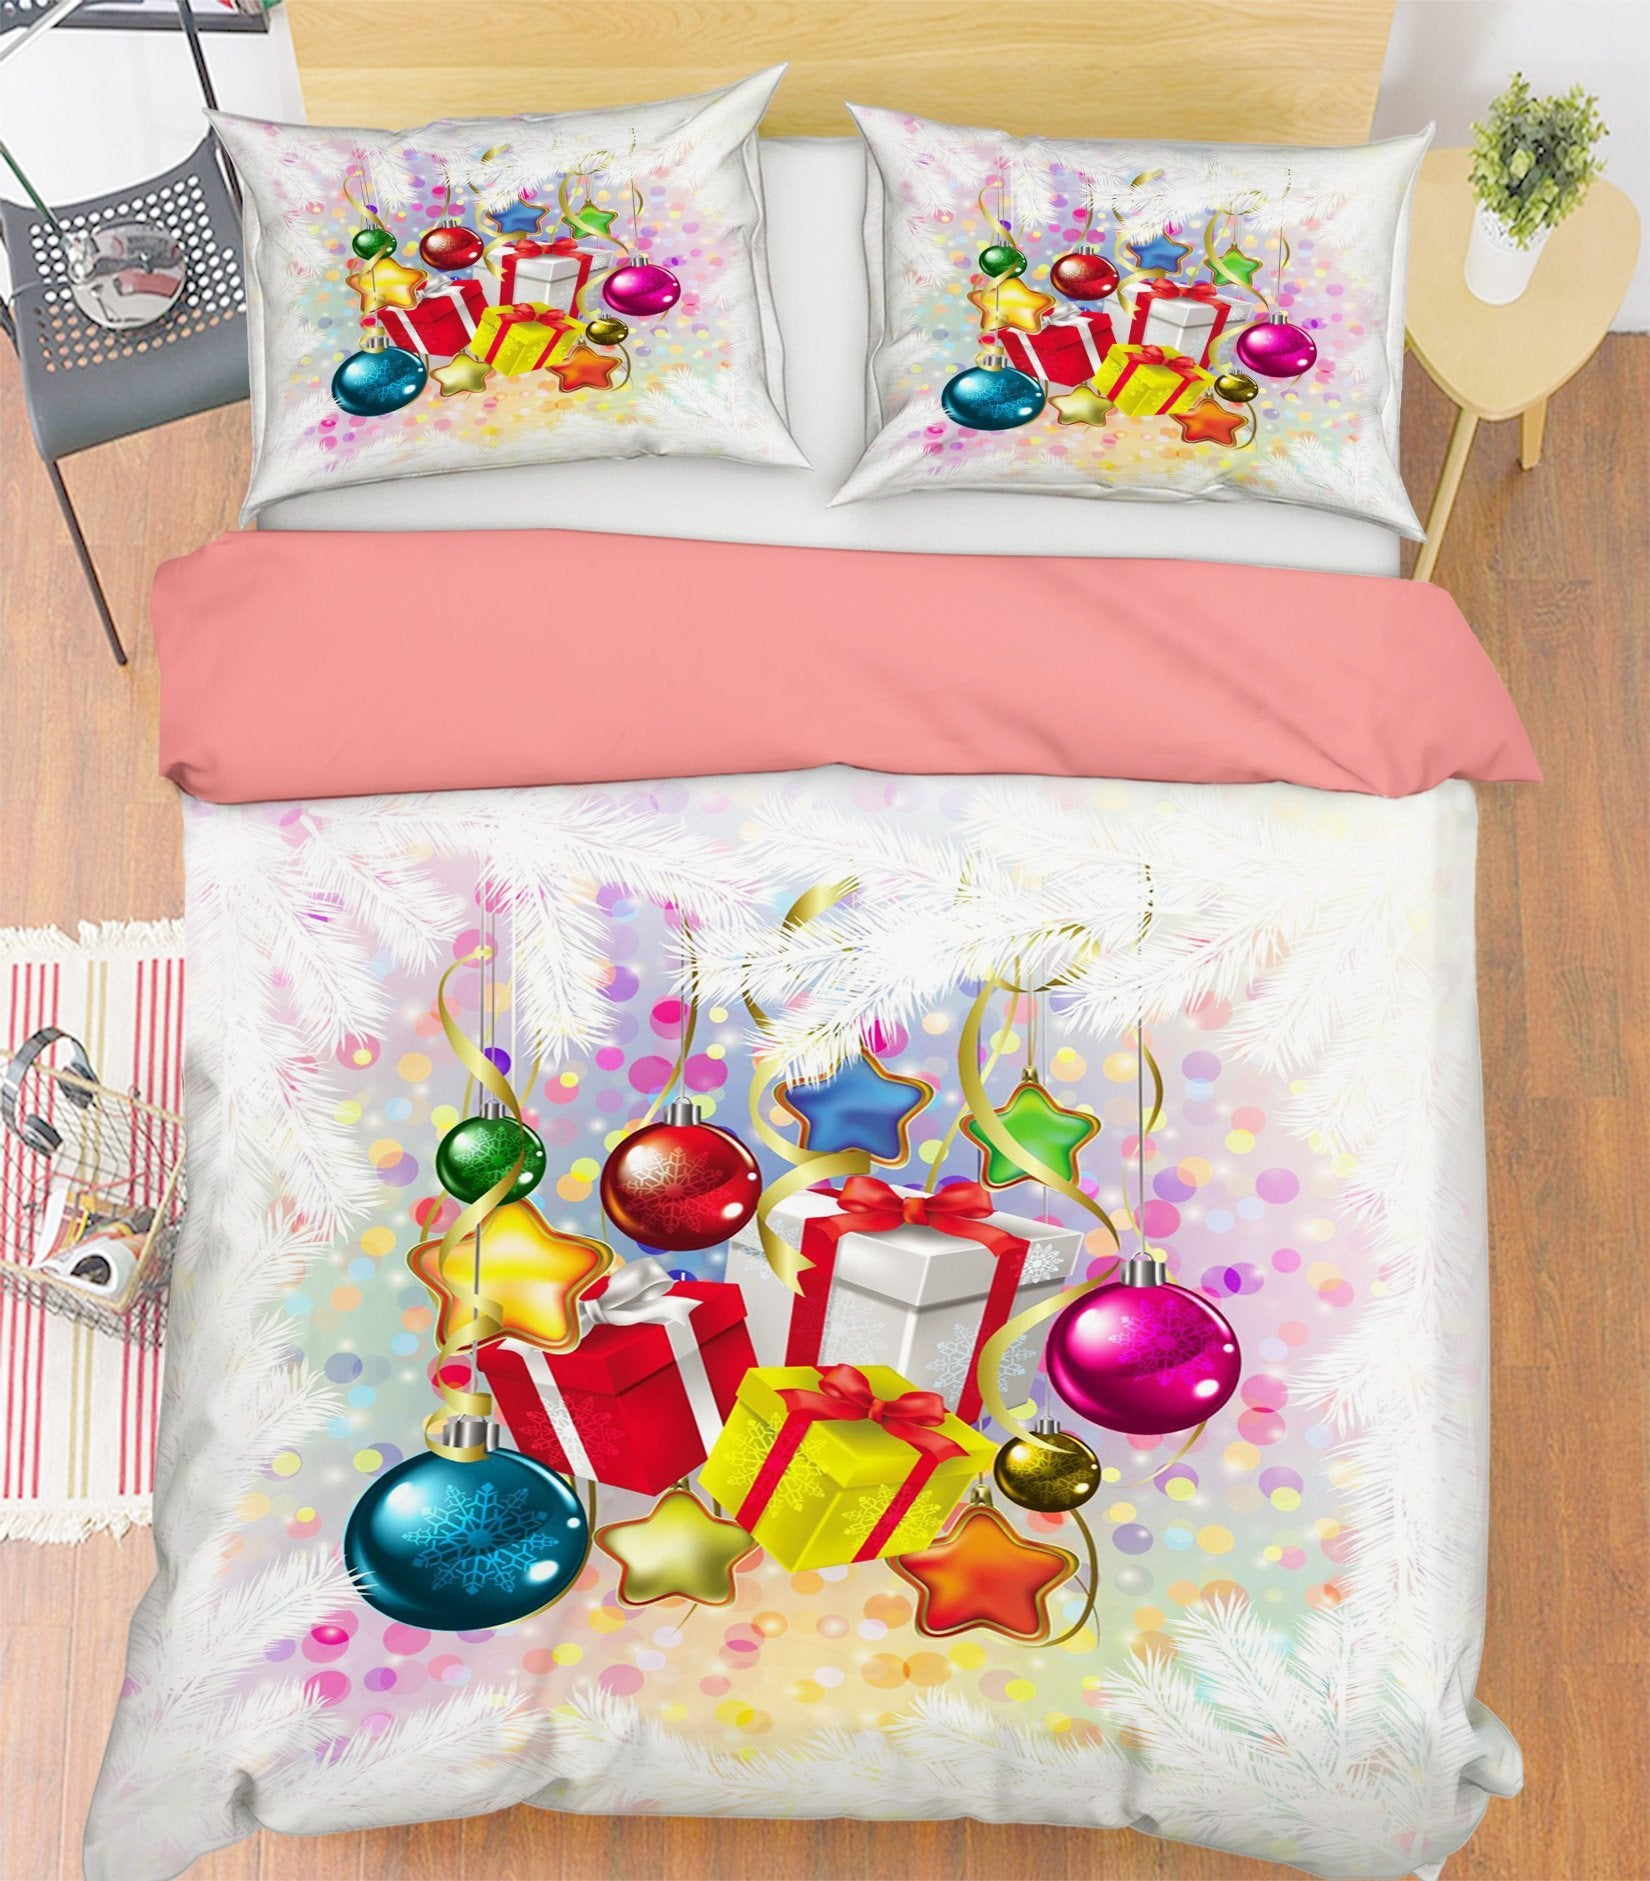 3D Christmas Colorful Ball Gift 46 Bed Pillowcases Quilt Quiet Covers AJ Creativity Home